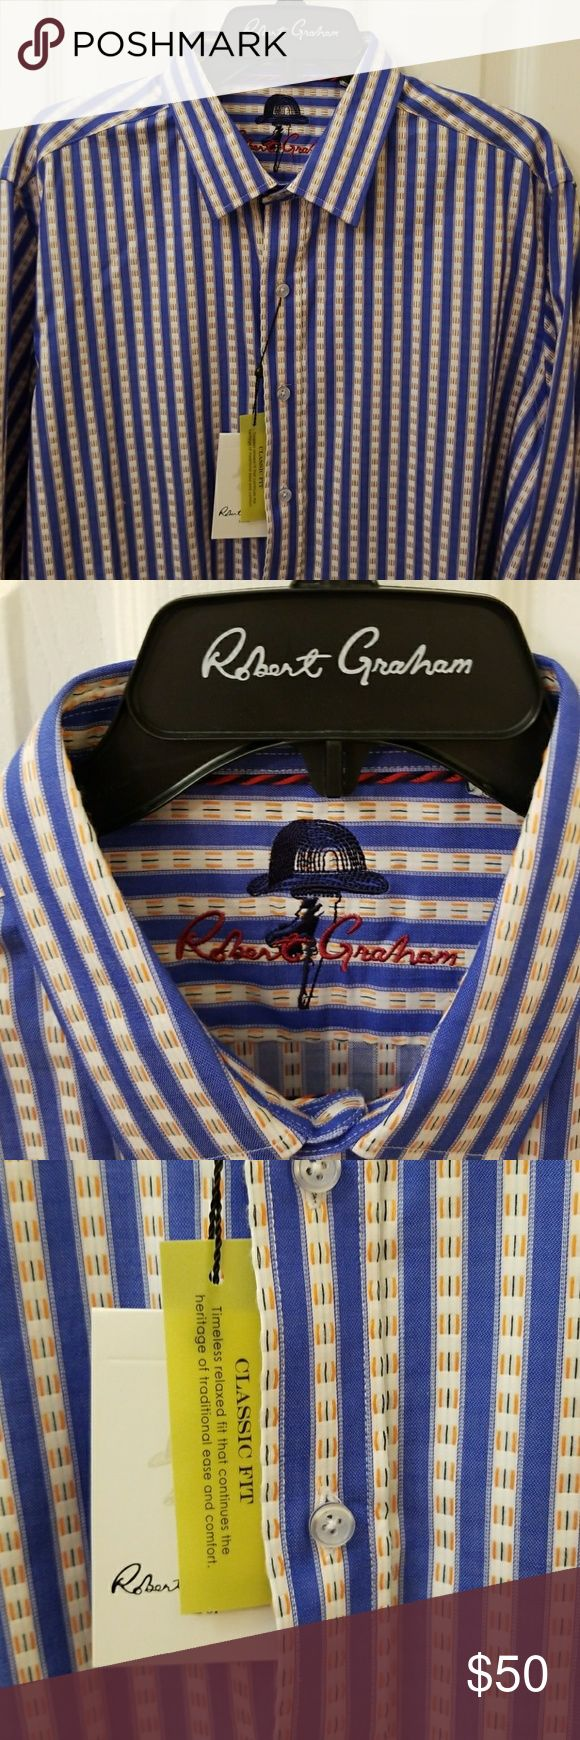 Robert Graham button Down Size Large Robert Graham button down classic fit shirt . Brand new with tags attached - pre owned - never used. Premium Robert Graham quality Robert Graham Shirts